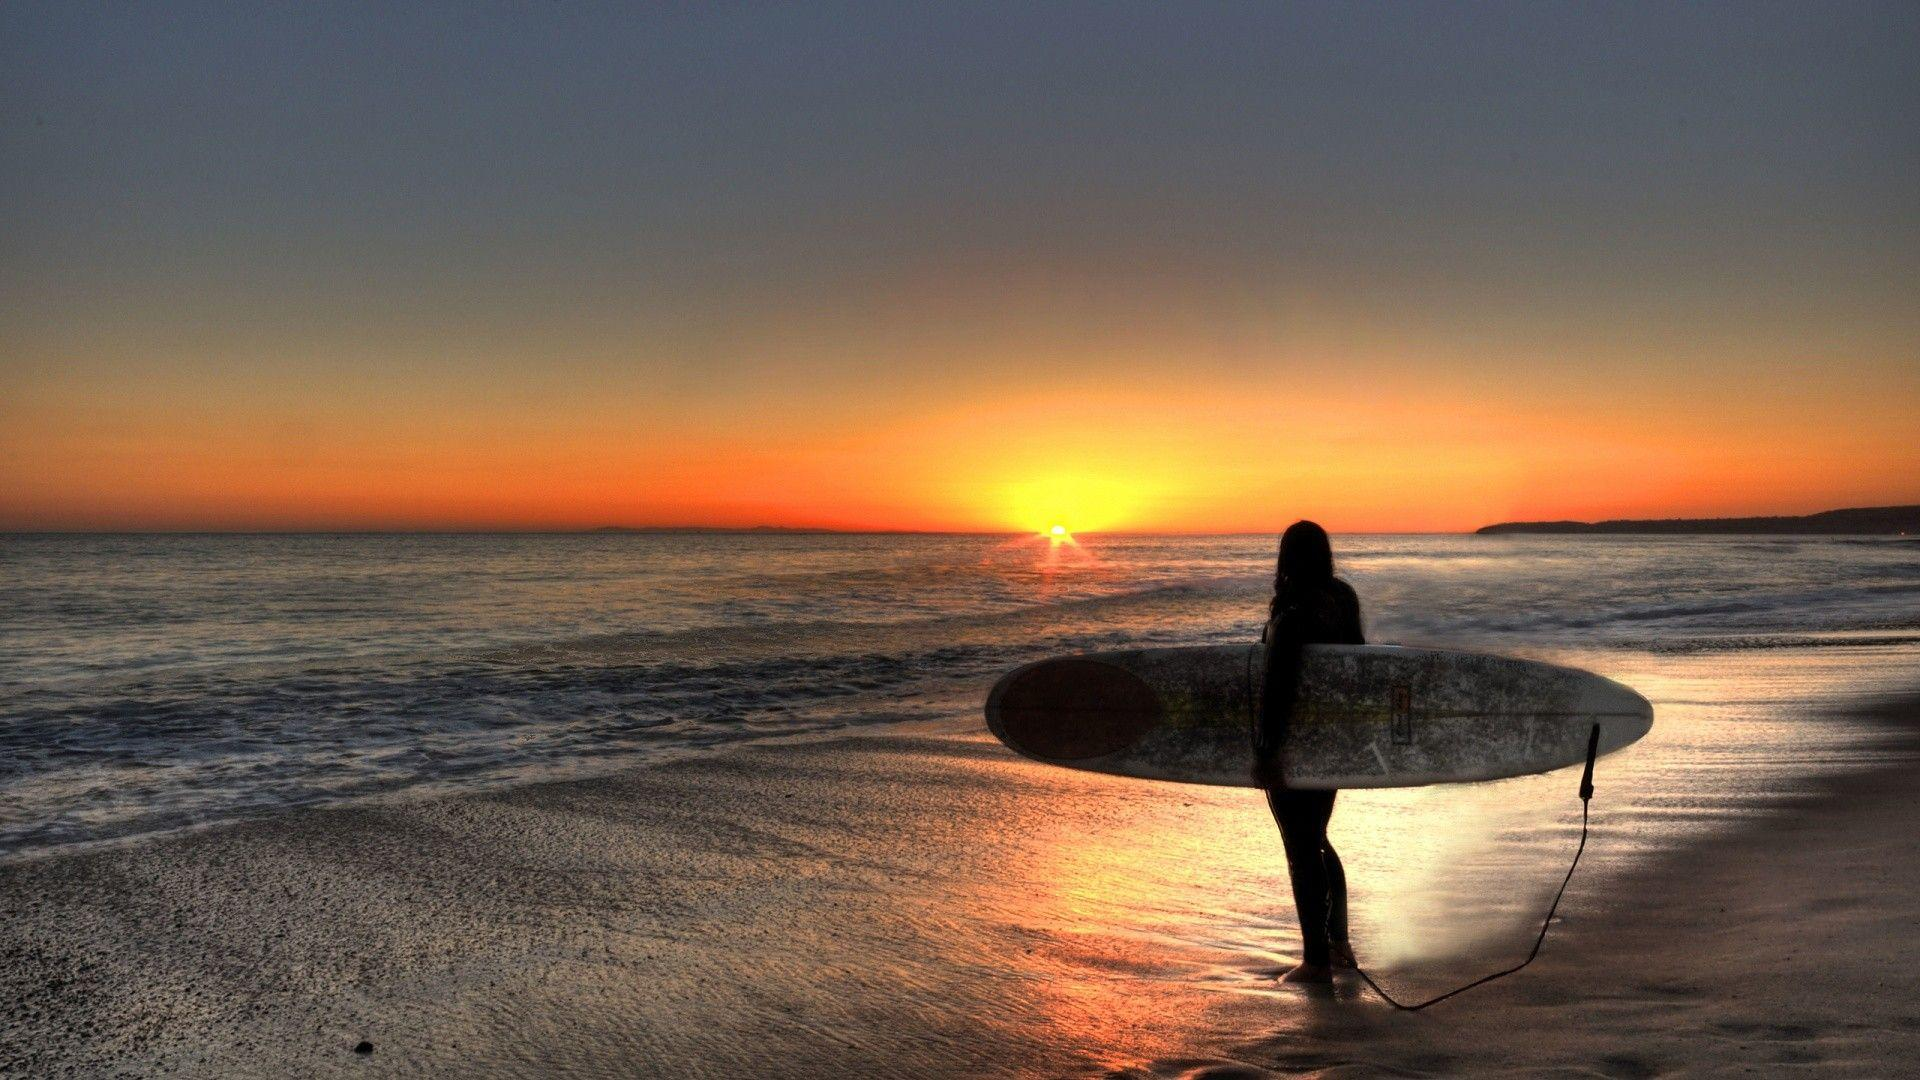 35 Beach Surfing Wallpapers   Download at WallpaperBro 1920x1080